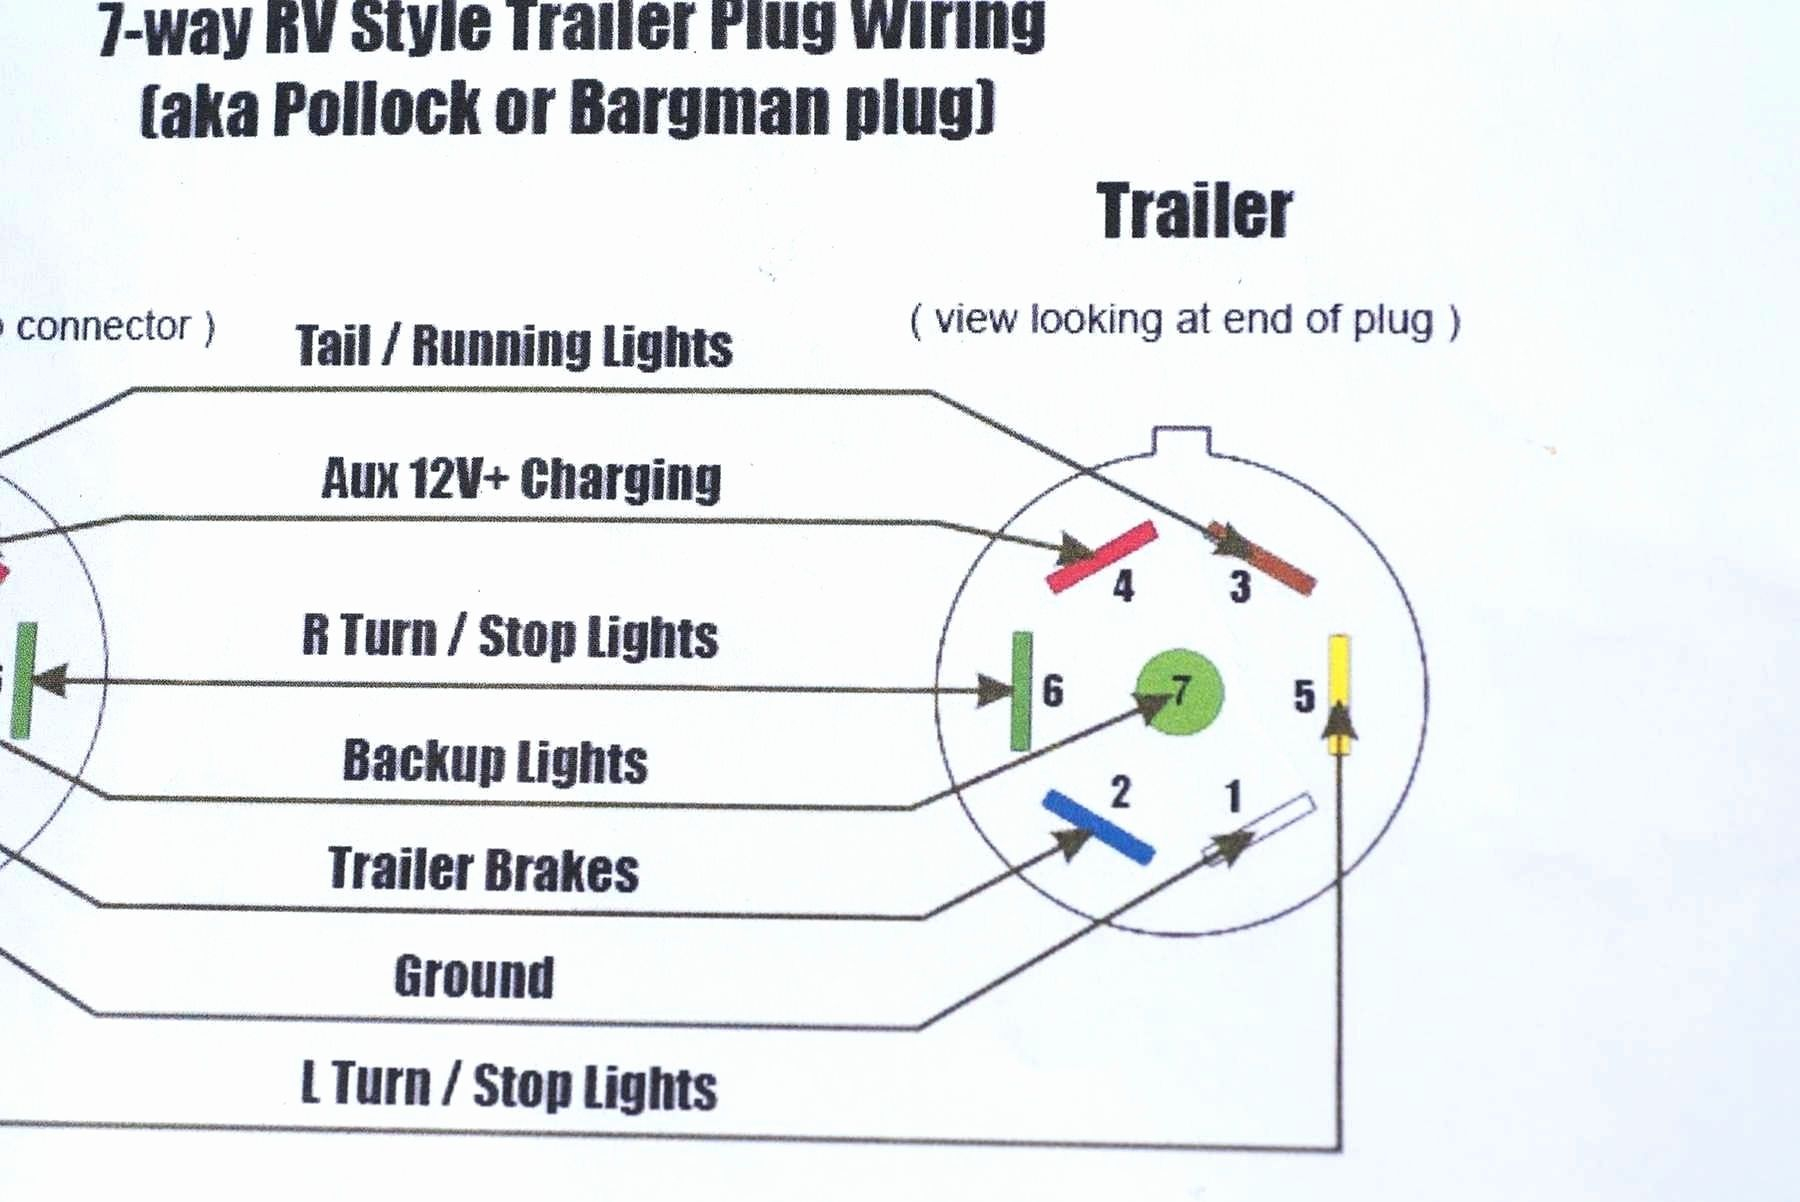 2006 Chevy 2500hd Trailer Wiring Diagram - Wiring Diagram